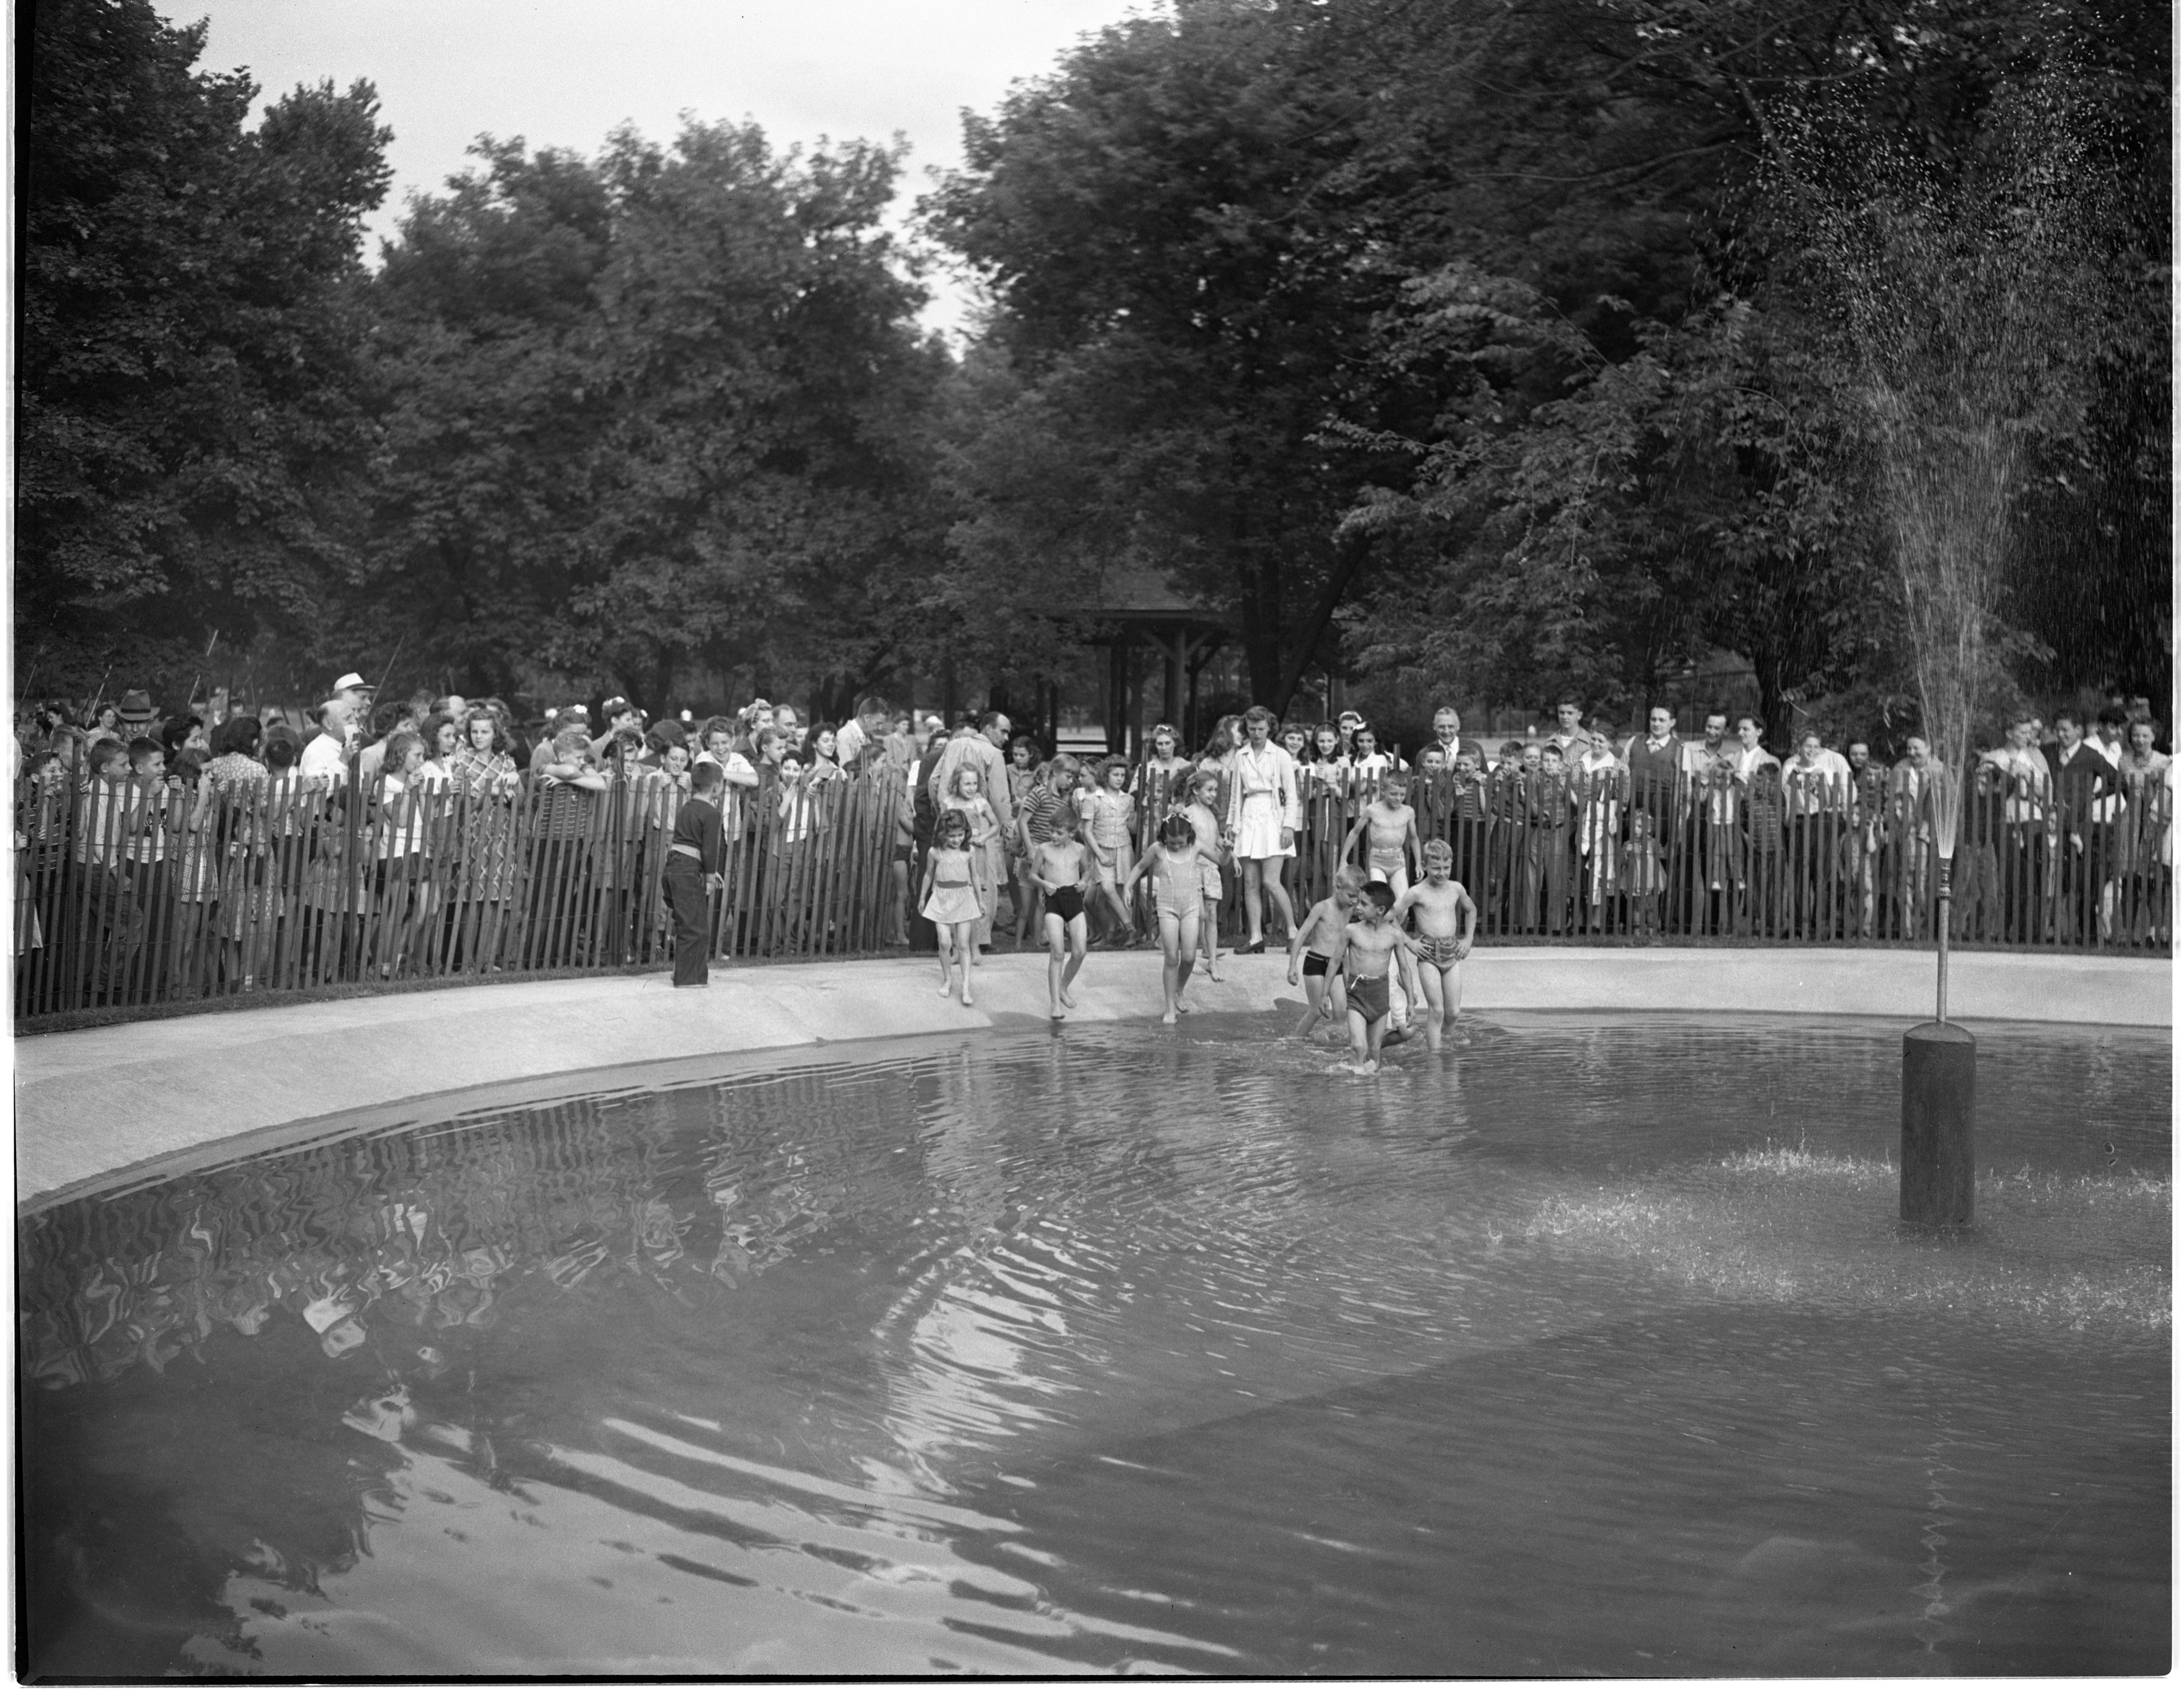 Children Enter The Water At The Opening Of The Burns Park Wading Pool, July 1944 image